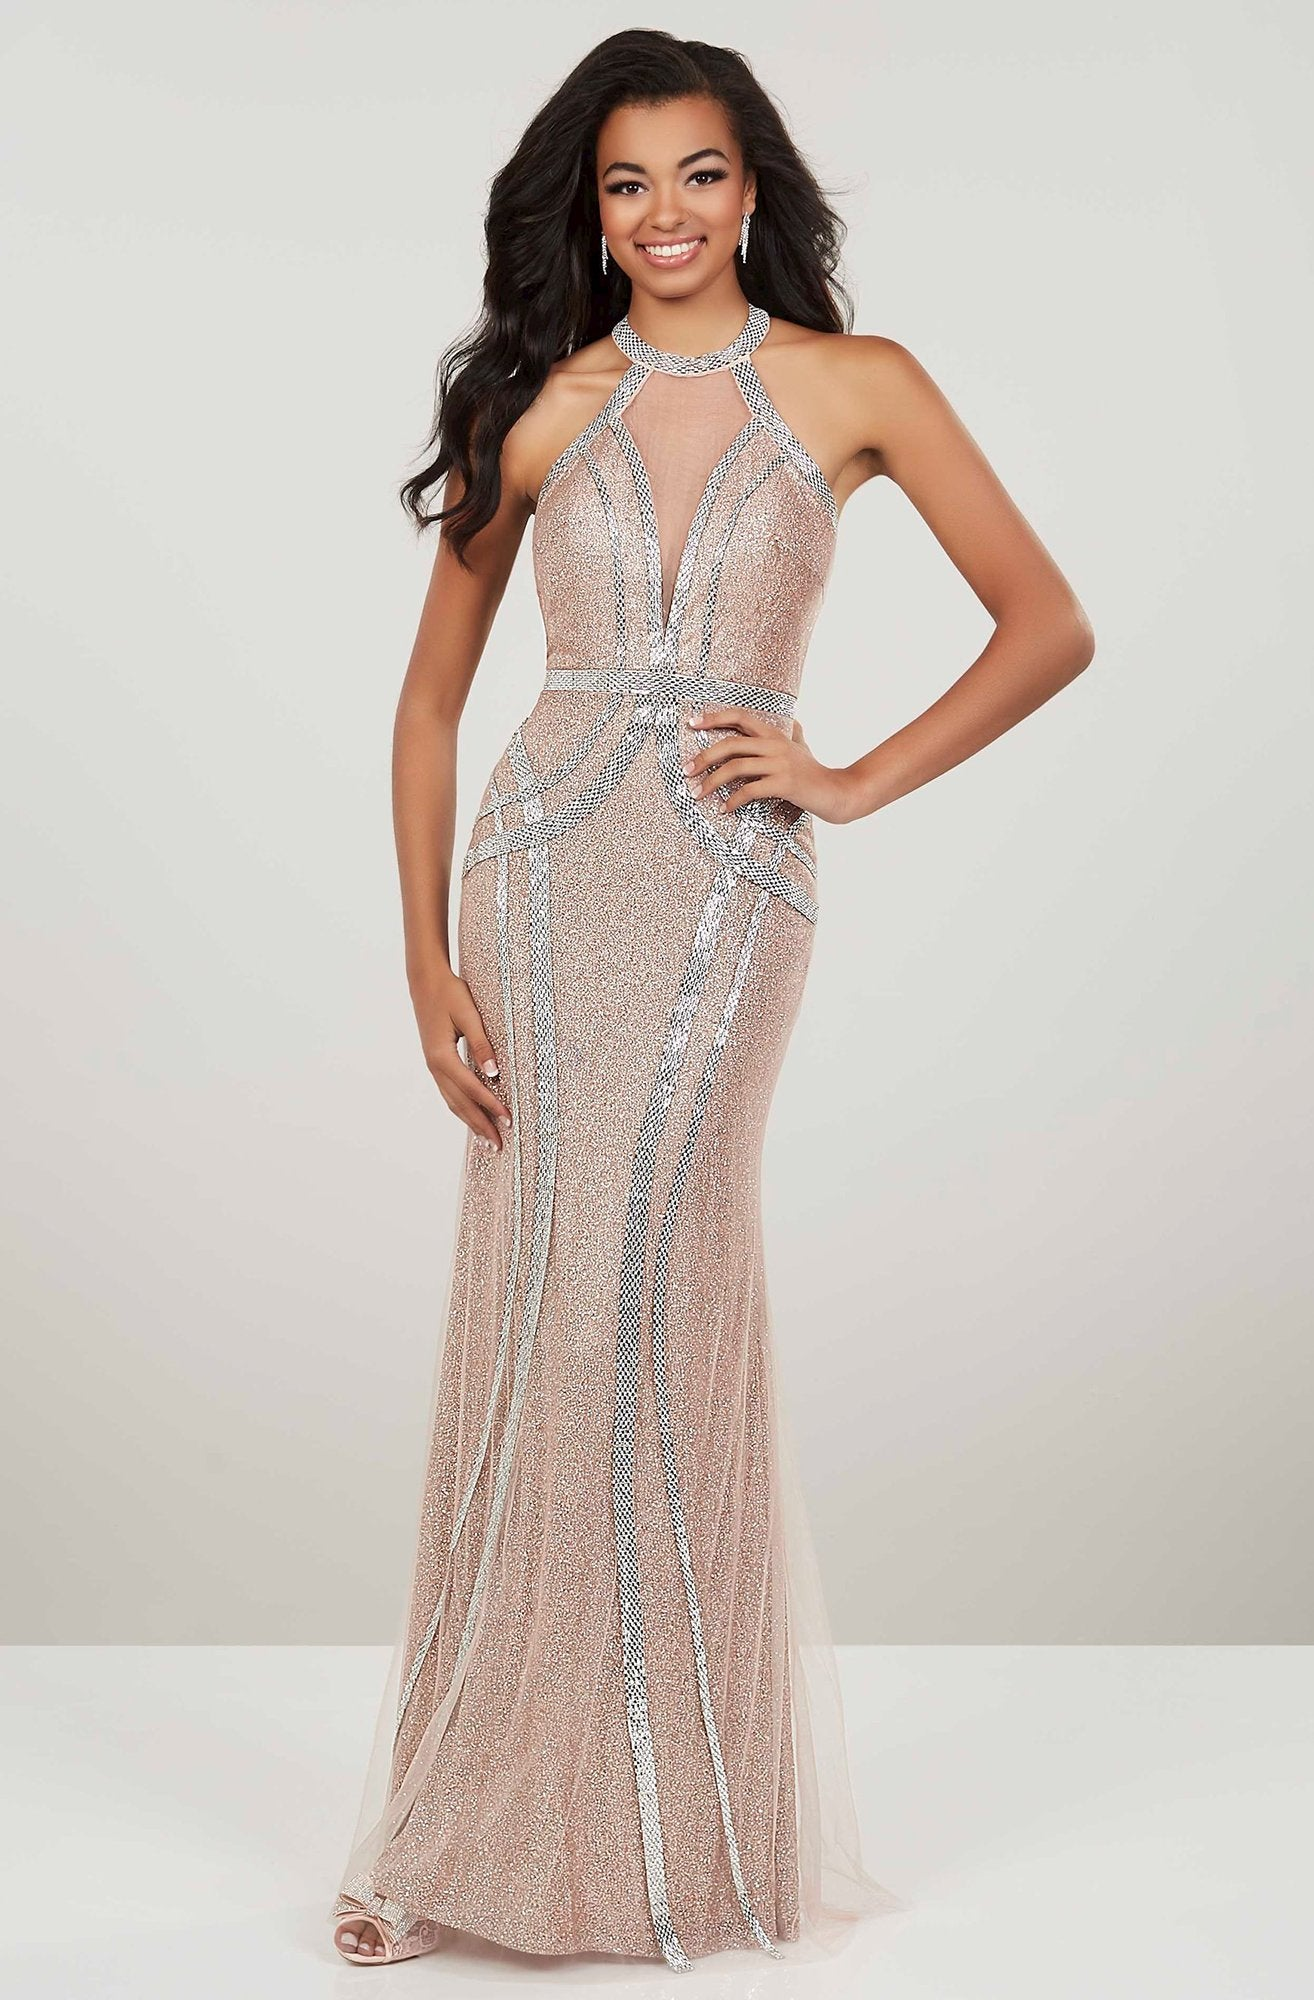 Panoply - 14949 Beaded High Halter Trumpet Dress In Gold